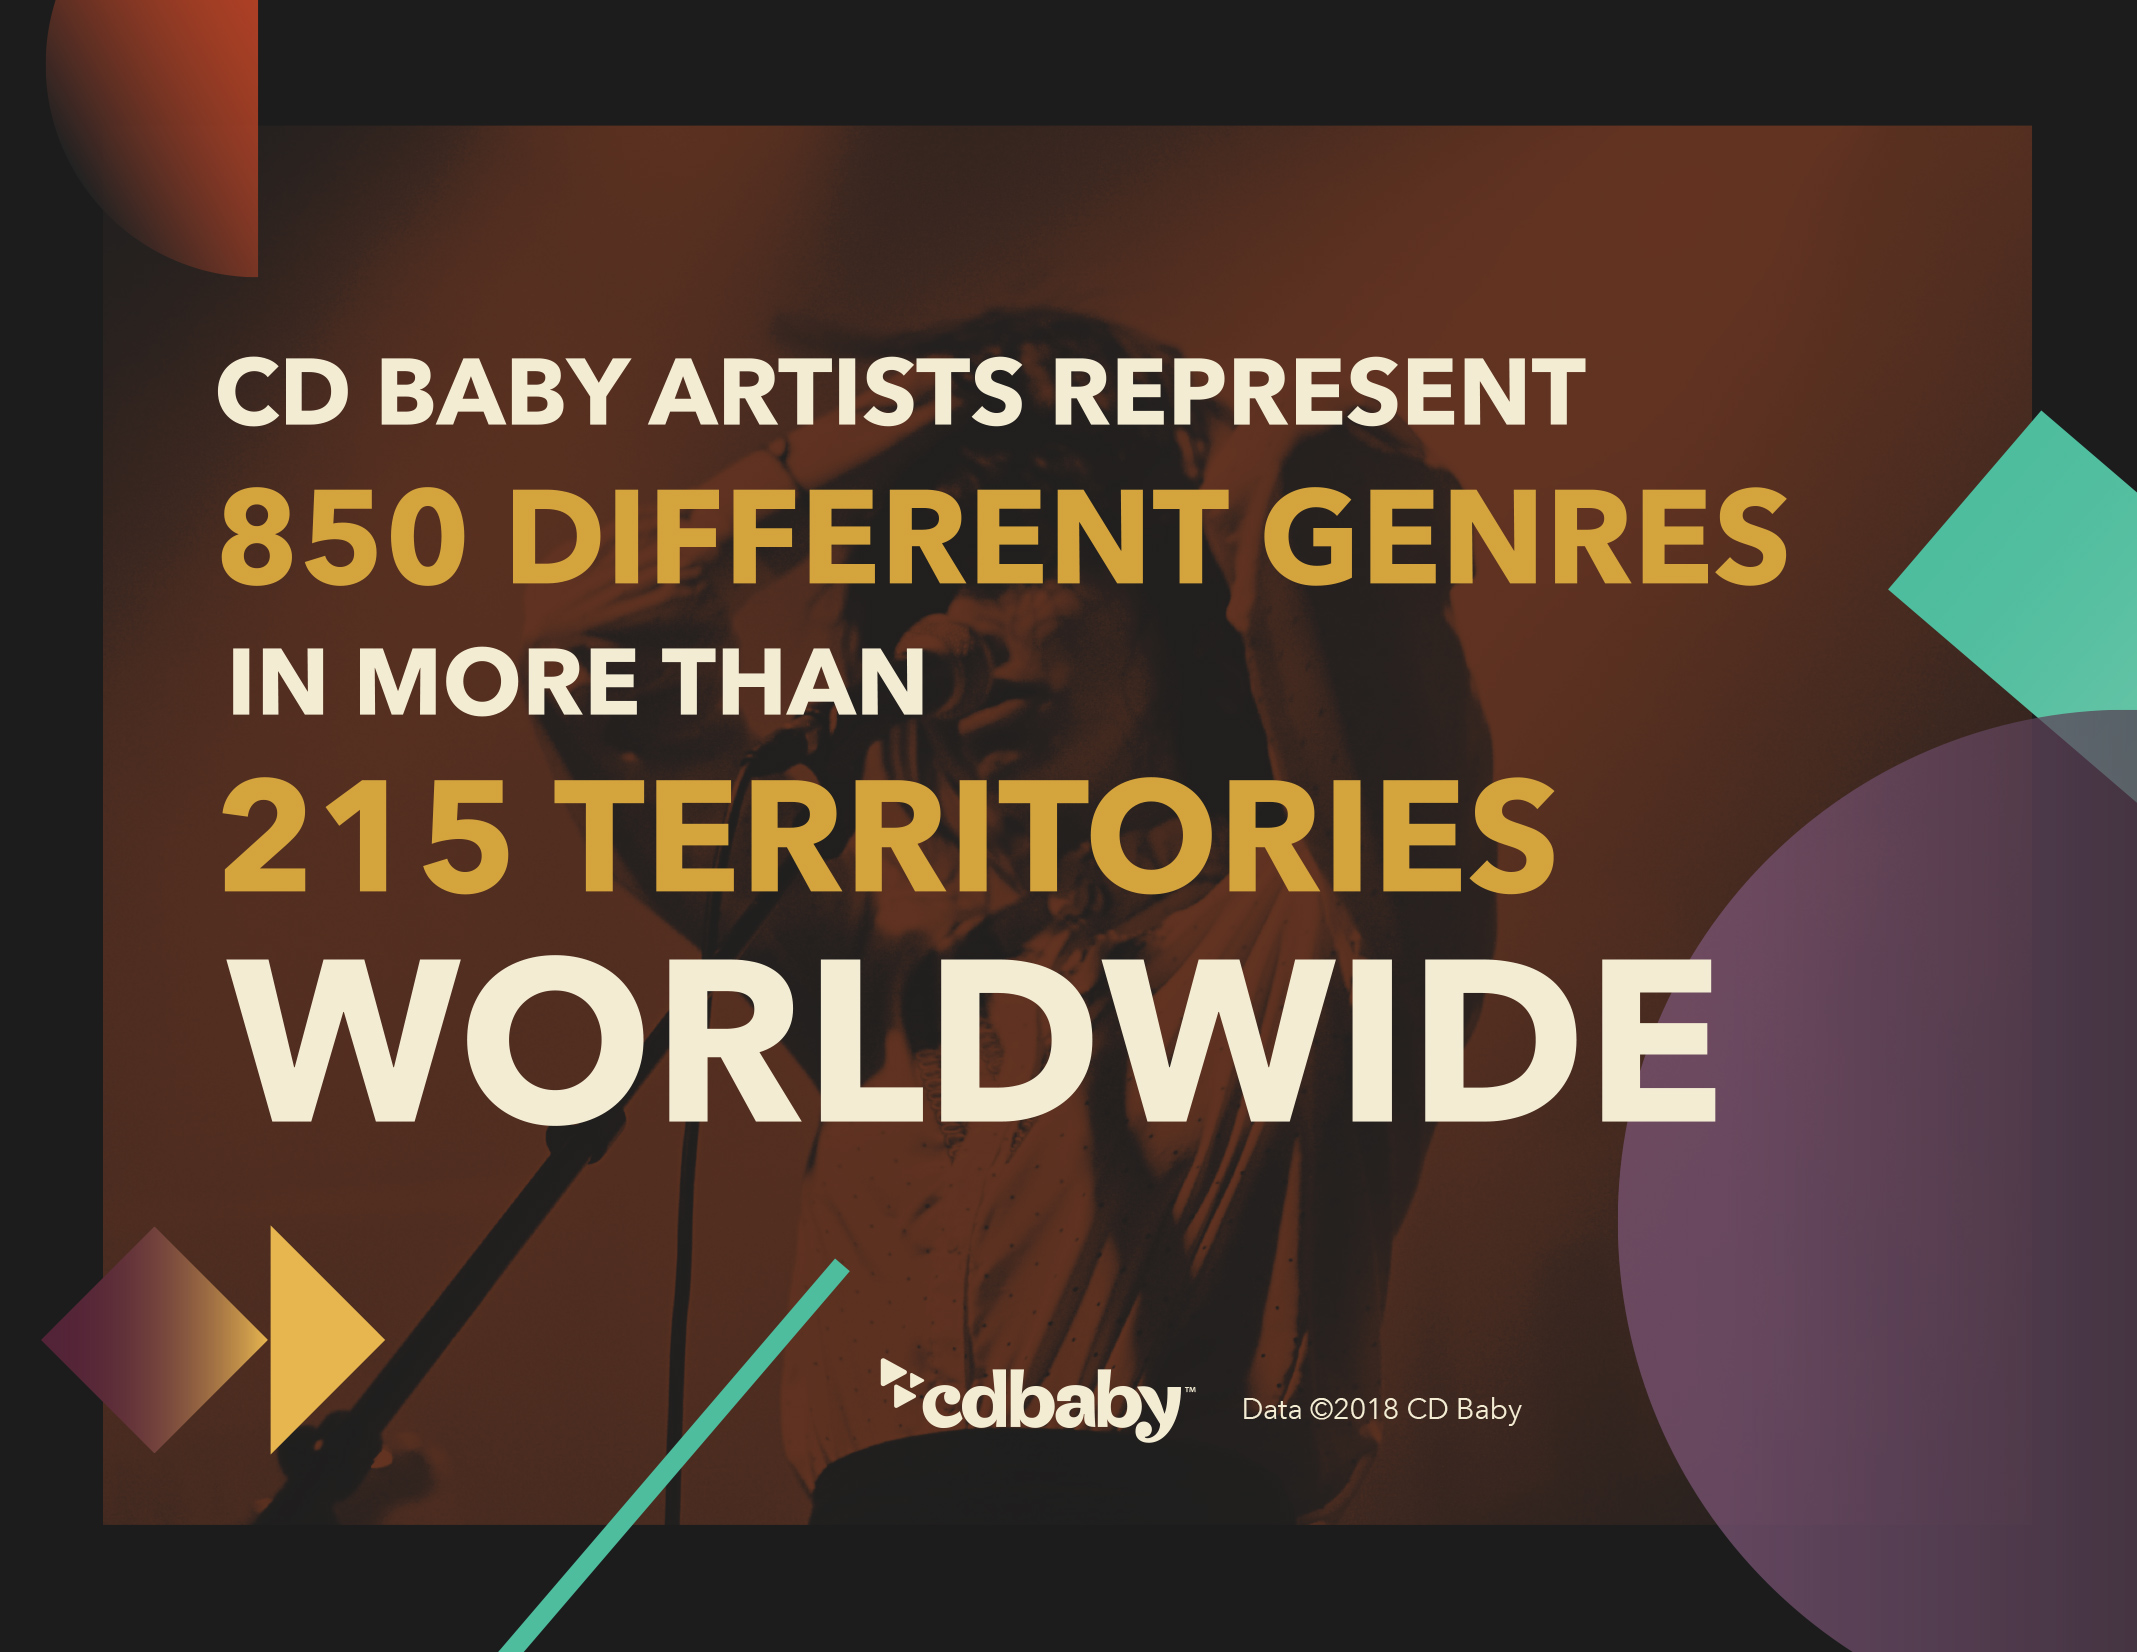 The breadth of CD Baby's music catalog